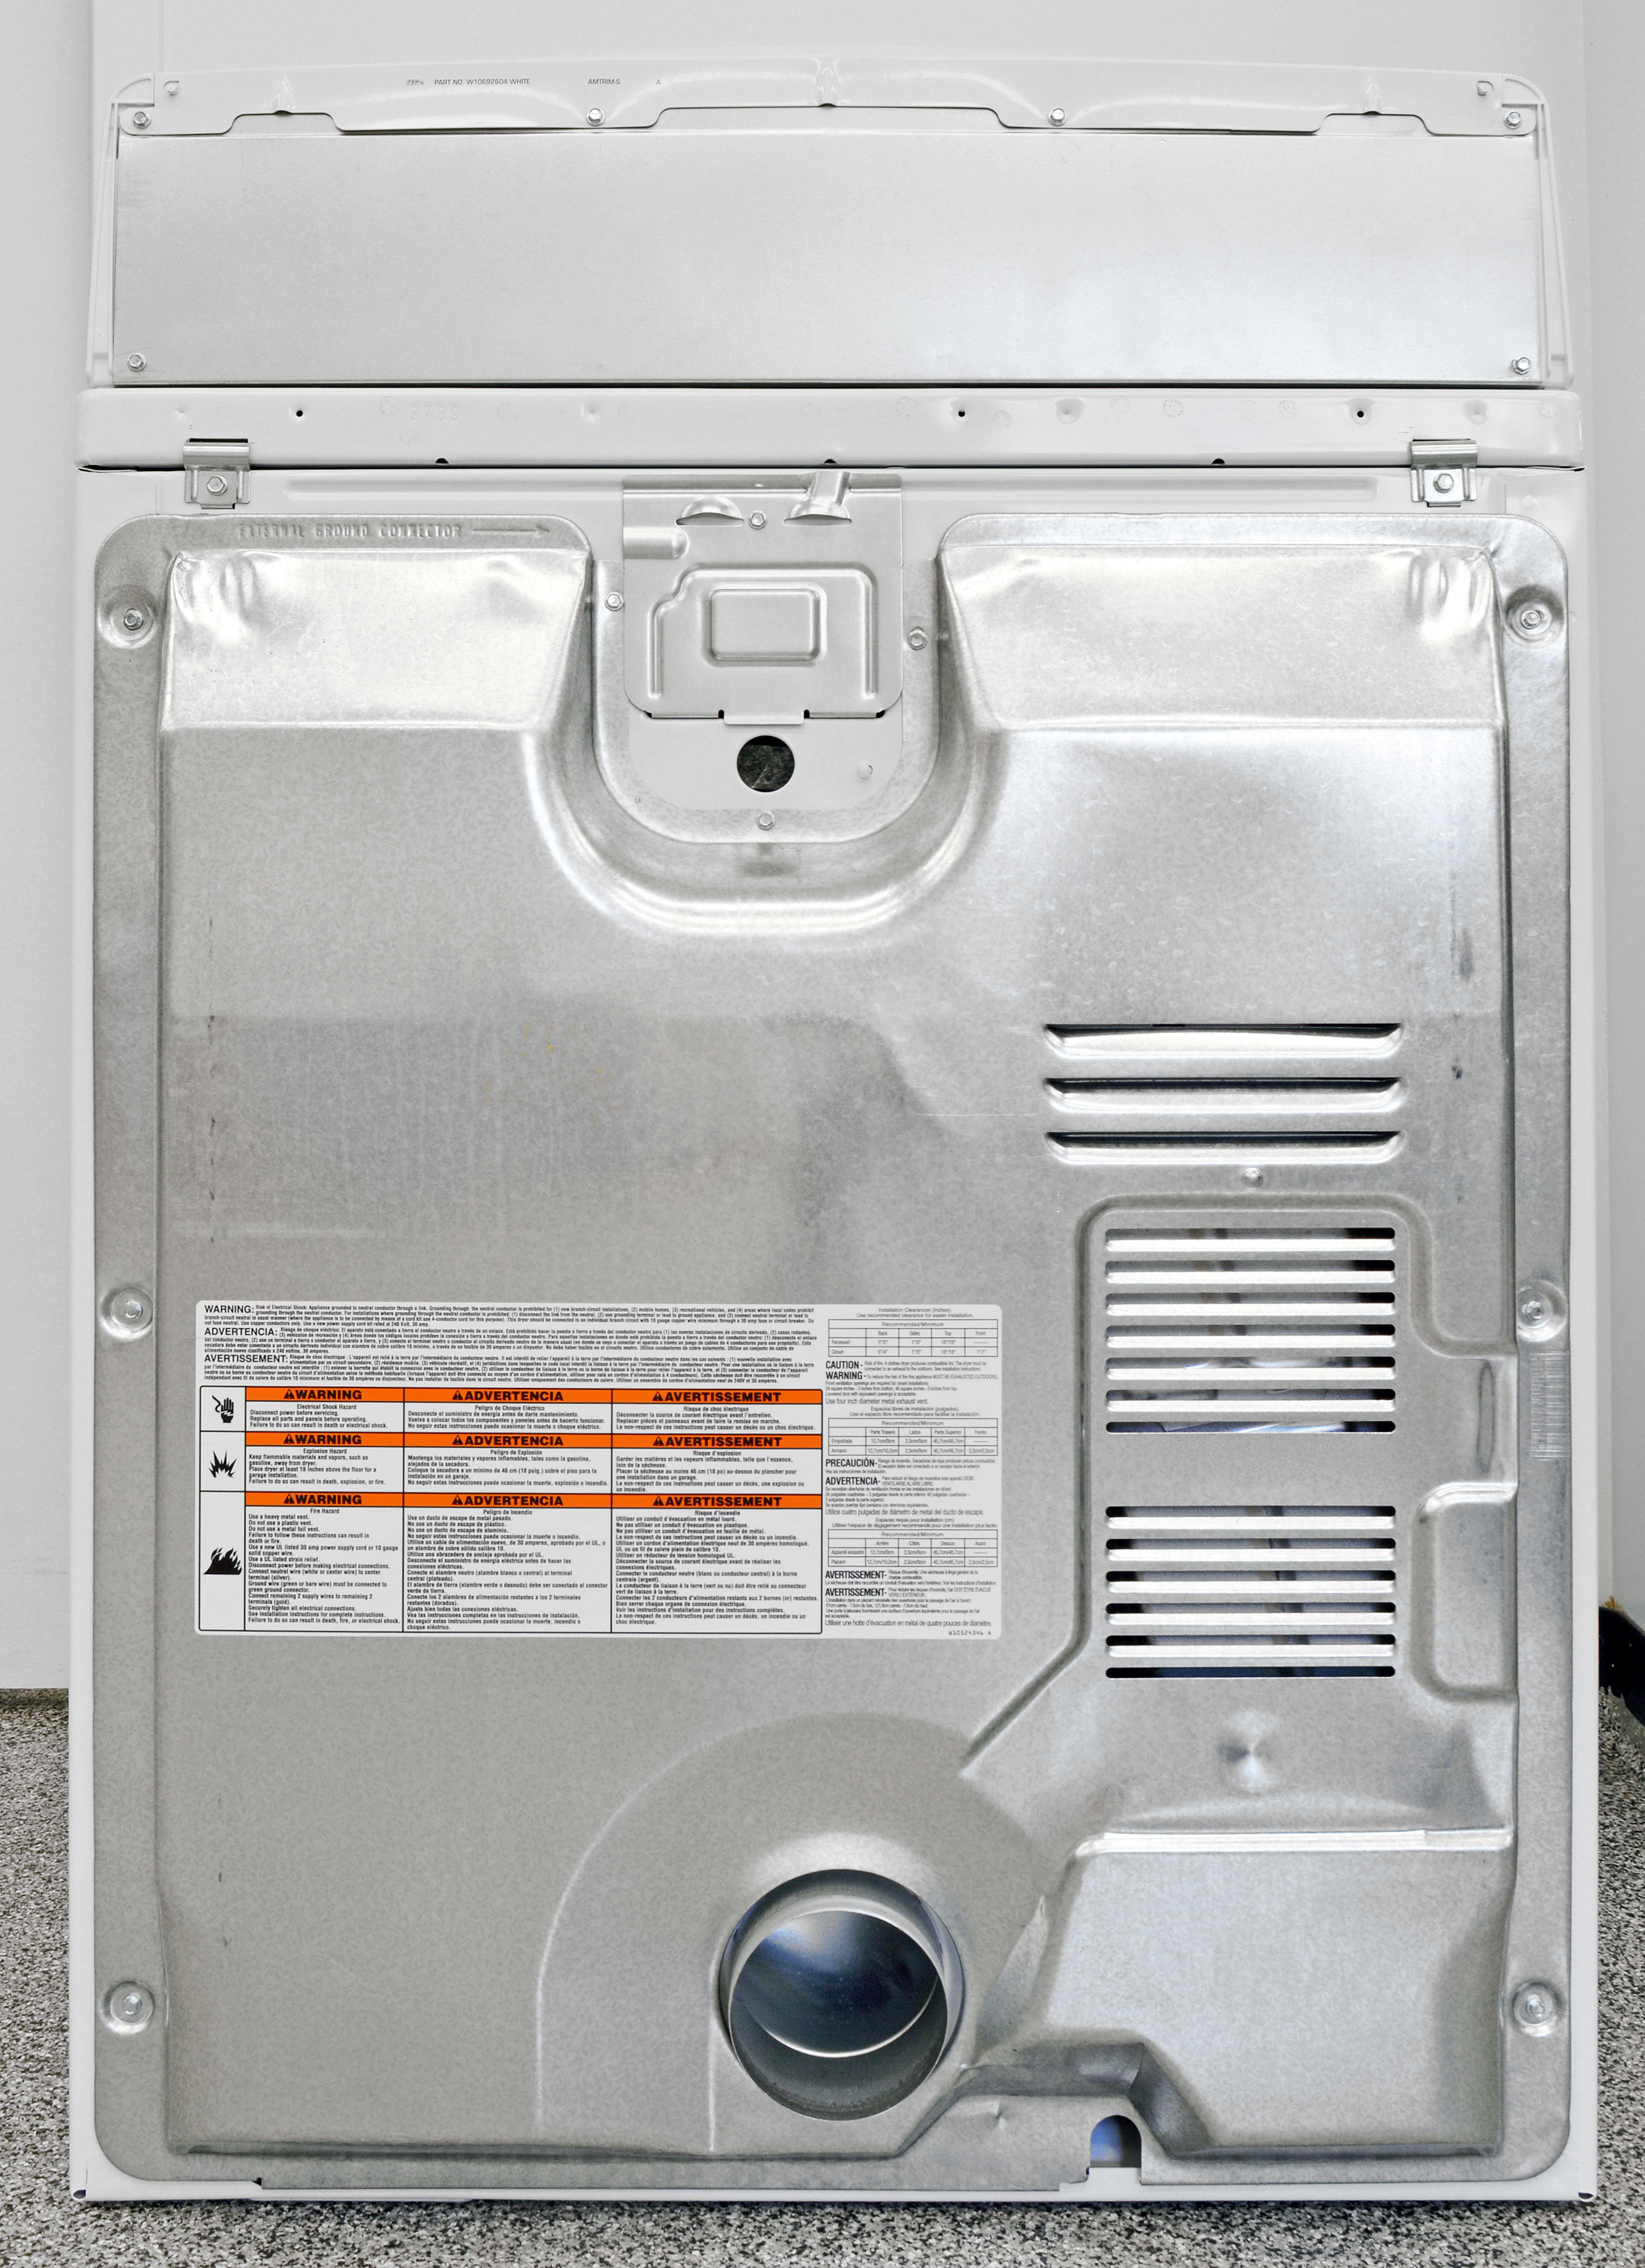 Without steam-centric features, there's nothing in the back of the Kenmore 62342 to deal with after set up.